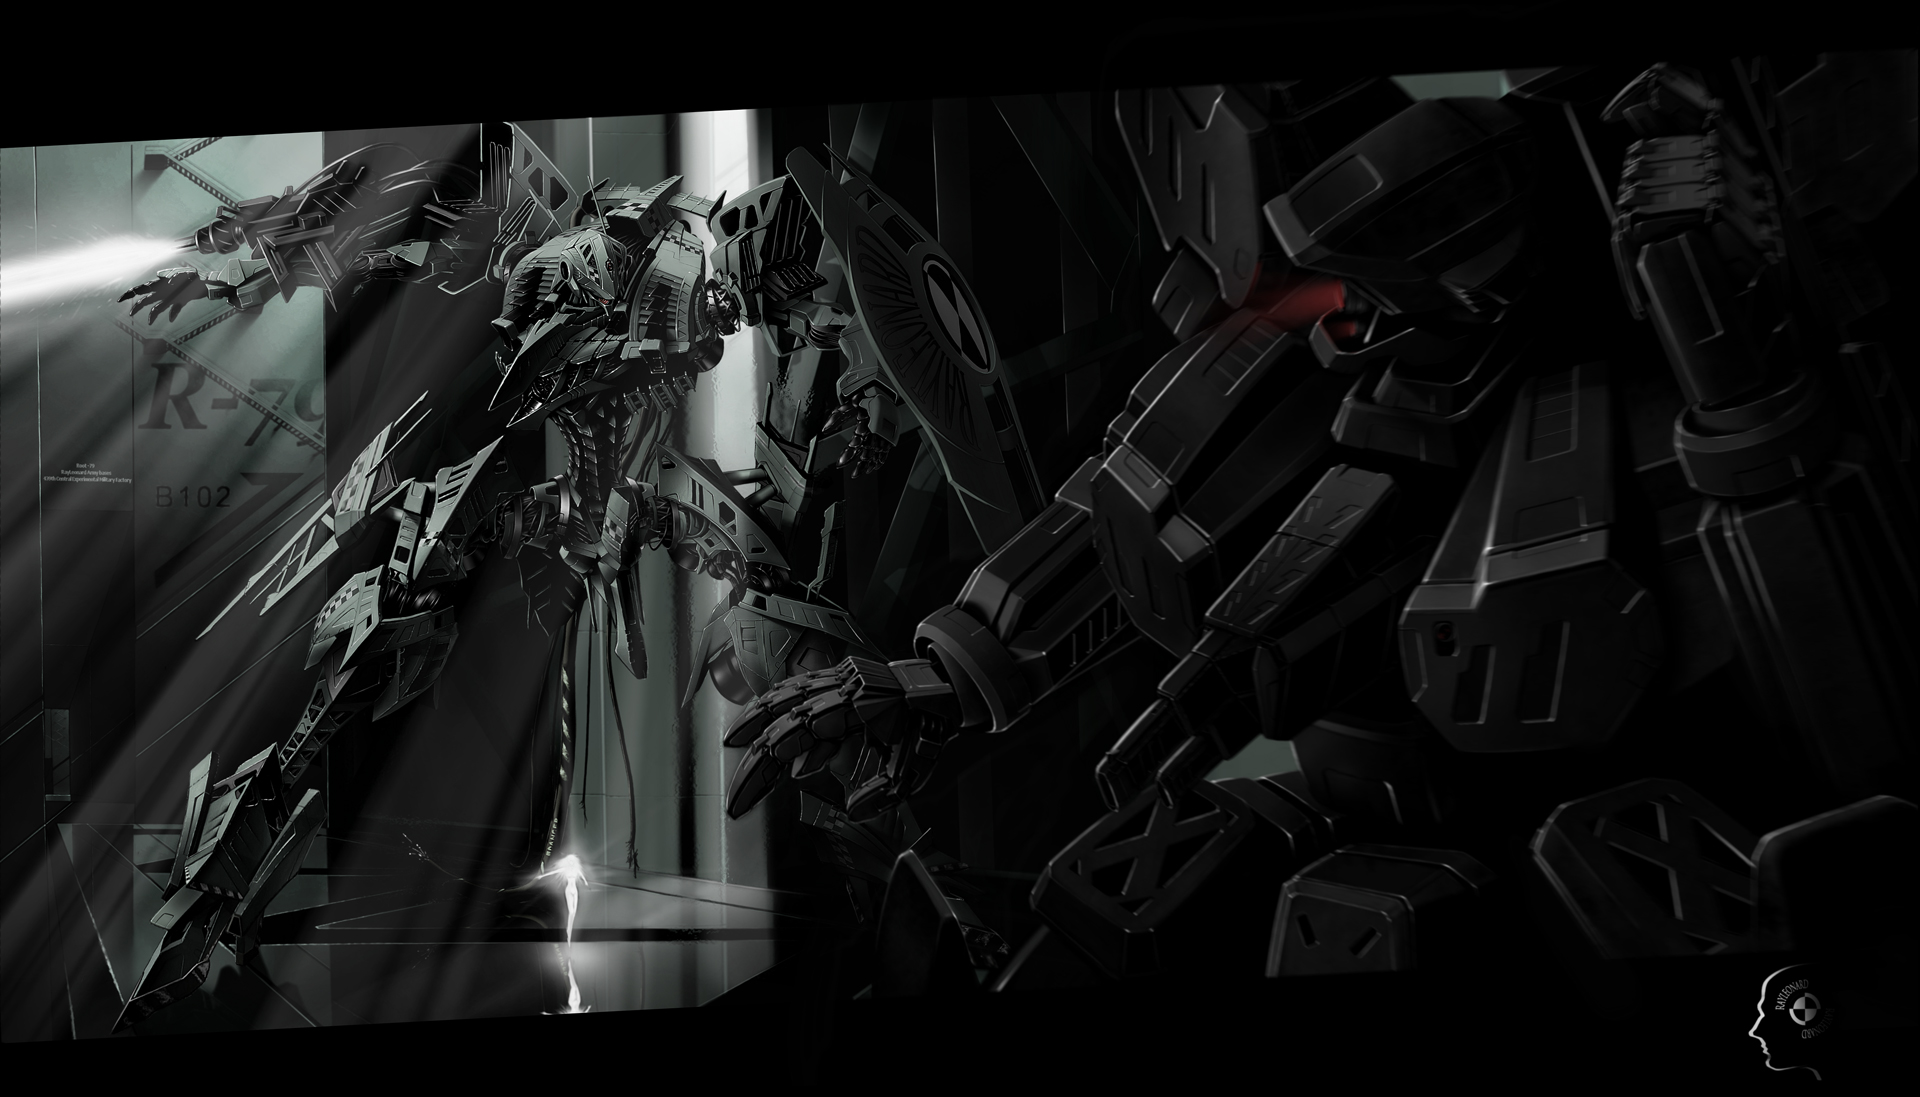 Armored Core Hd Wallpaper Background Image 1920x1097 Id